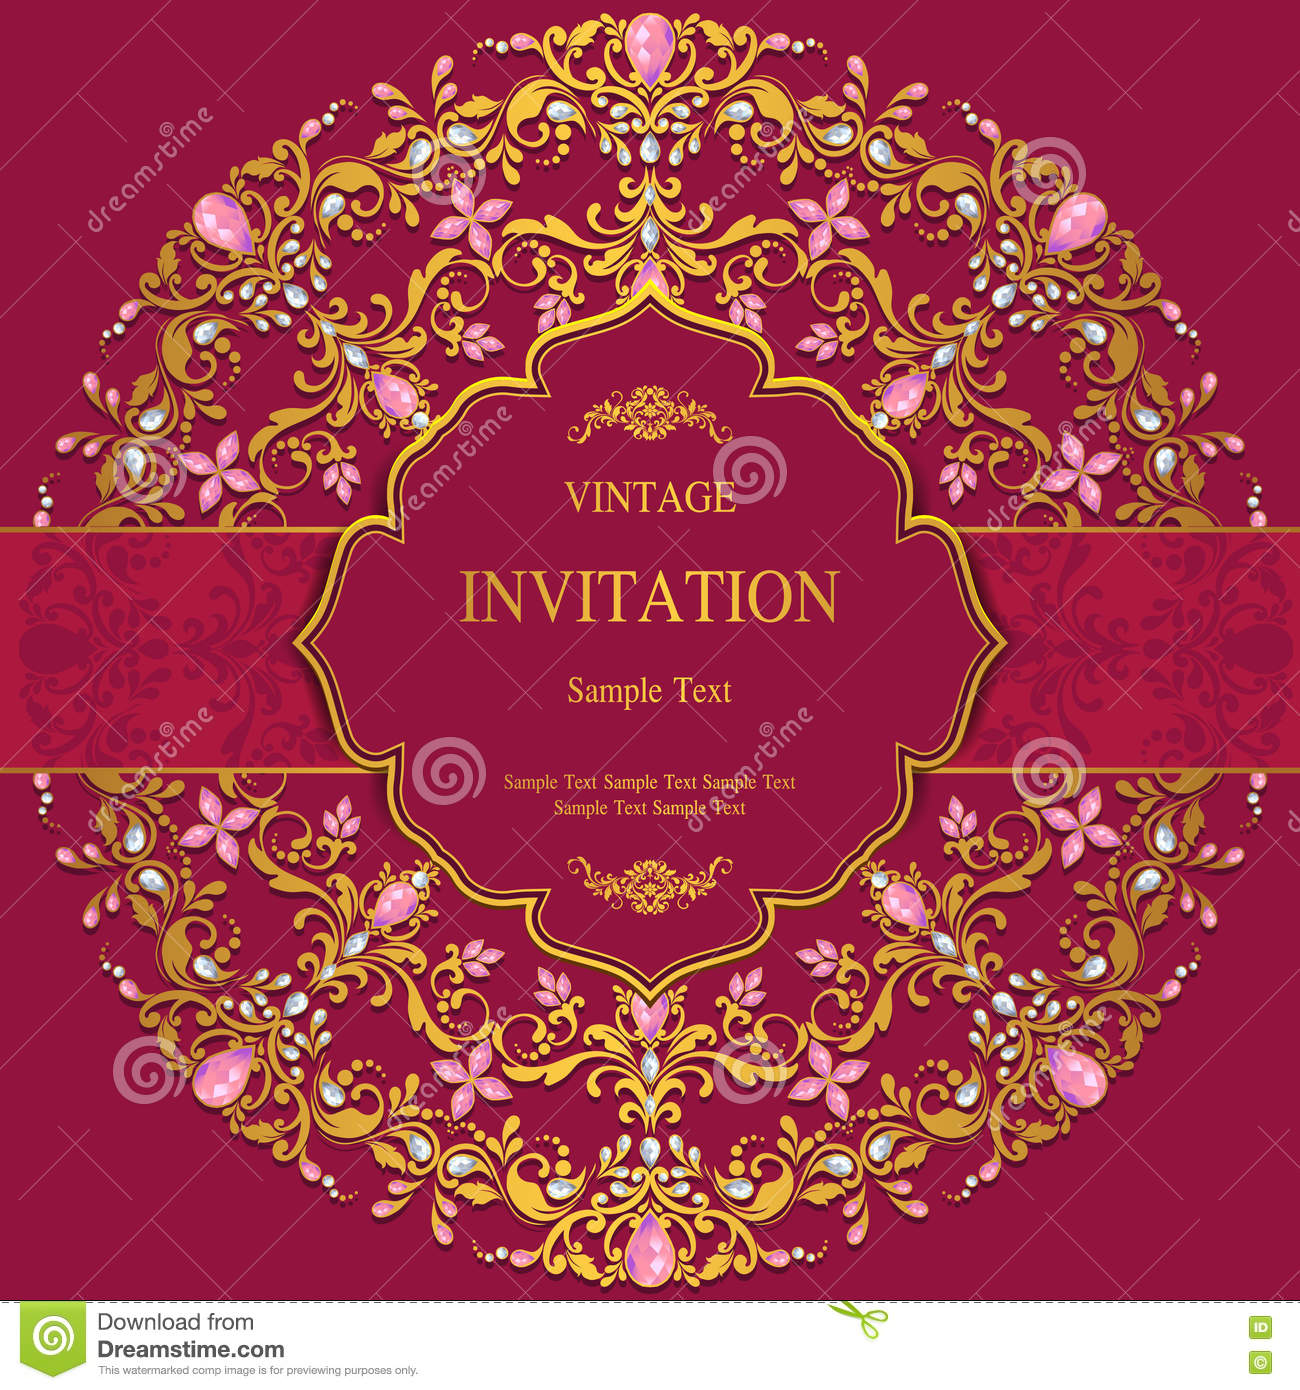 Wedding Invitation Or Card With Abstract Background. Stock Photo ...